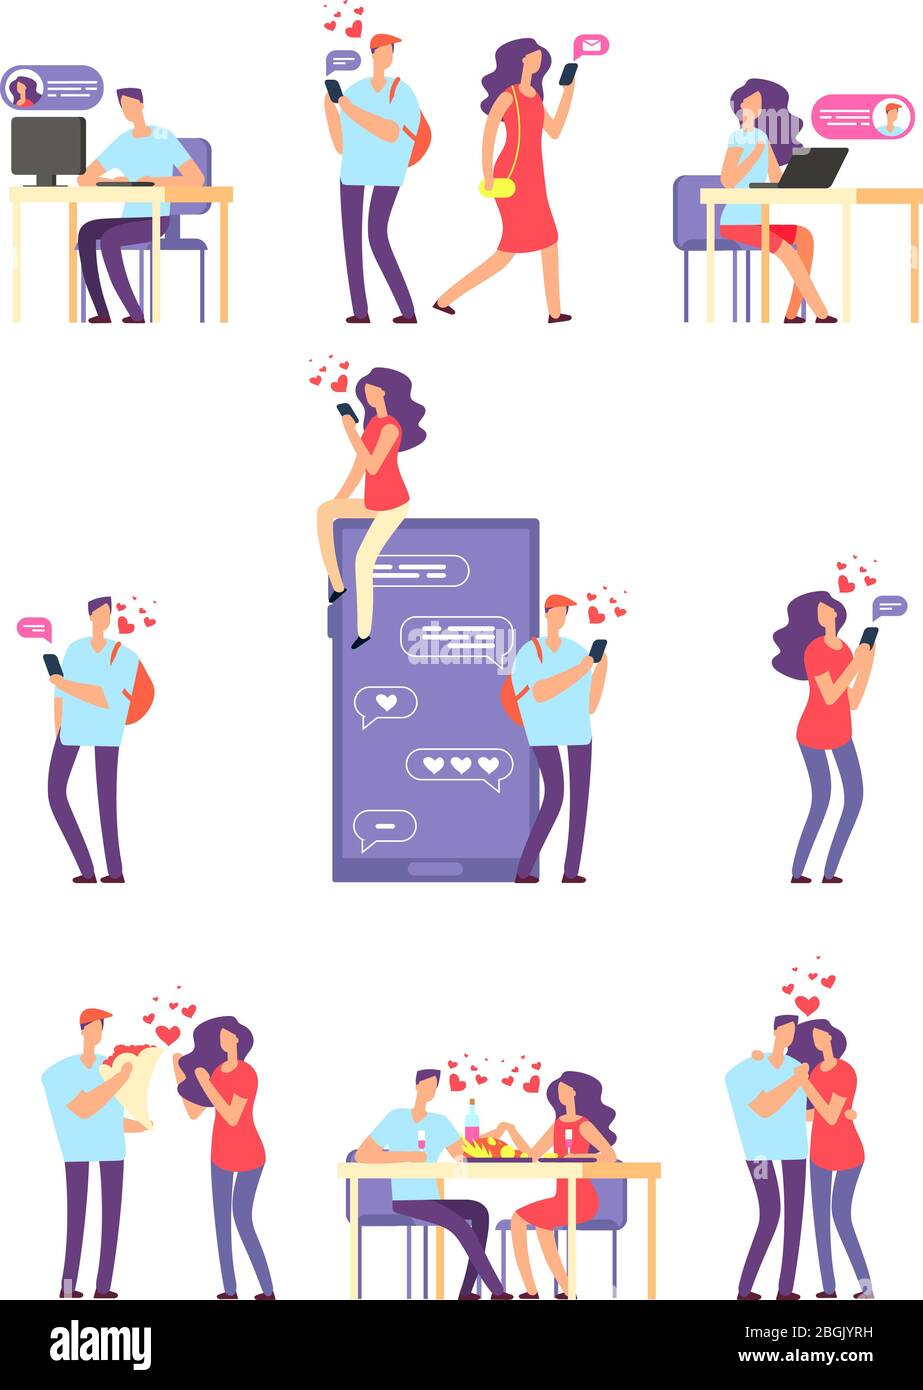 Online romantic dating. Man and woman, cute couple using mobile application for talking and love relationship. Vector concept. Dating and love, online man and woman relationship illustration Stock Vector